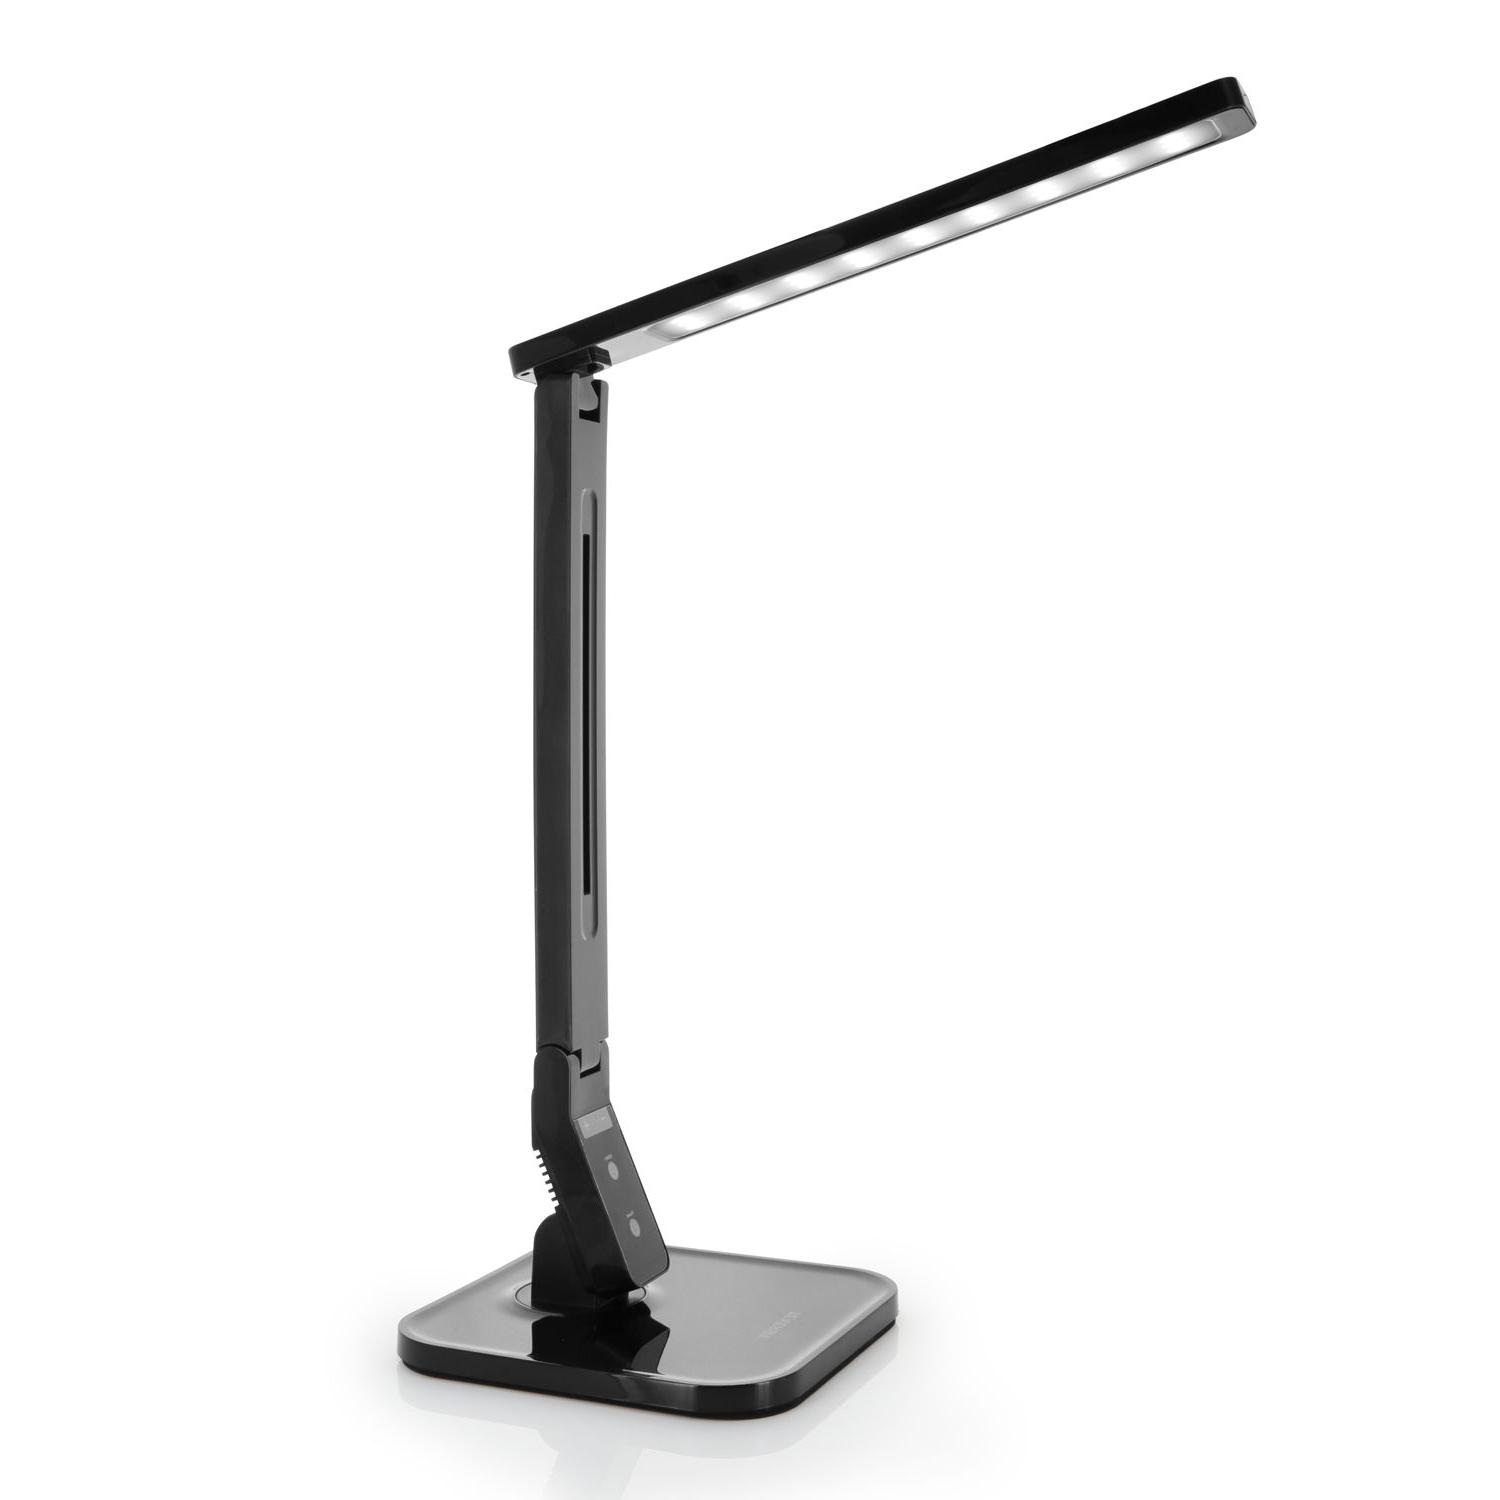 Tenergy 7W Dimmable LED Desk Lamp Touch Control w/ Auto Shut